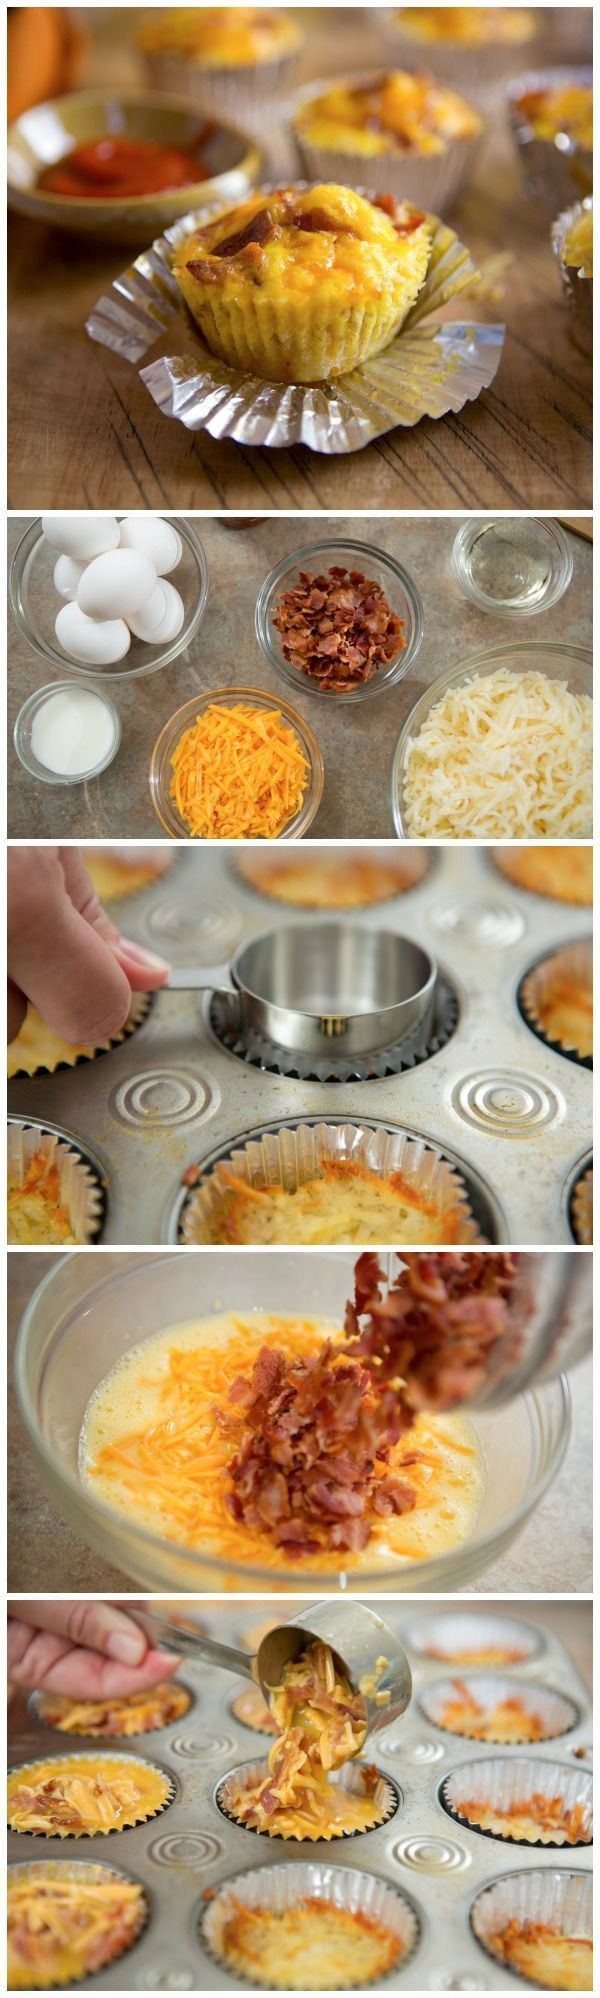 Breakfast Cupcakes Egg  1000 images about Breakfast stuffs on Pinterest